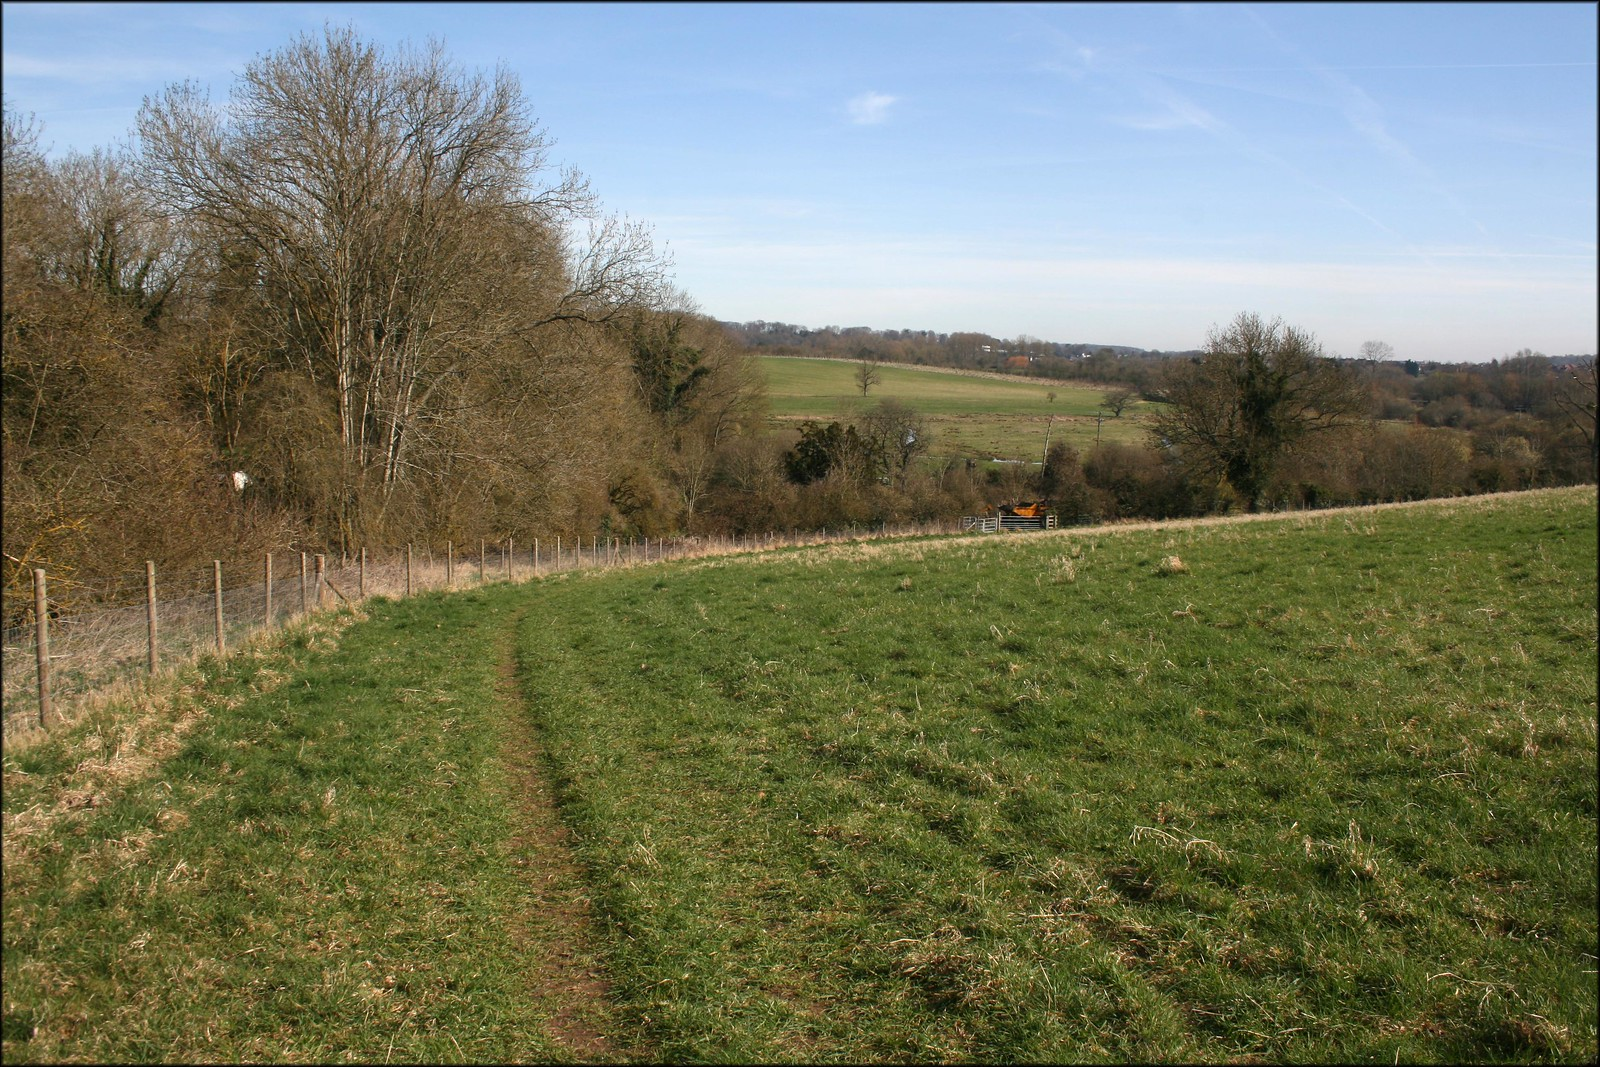 The Test valley near Tufton